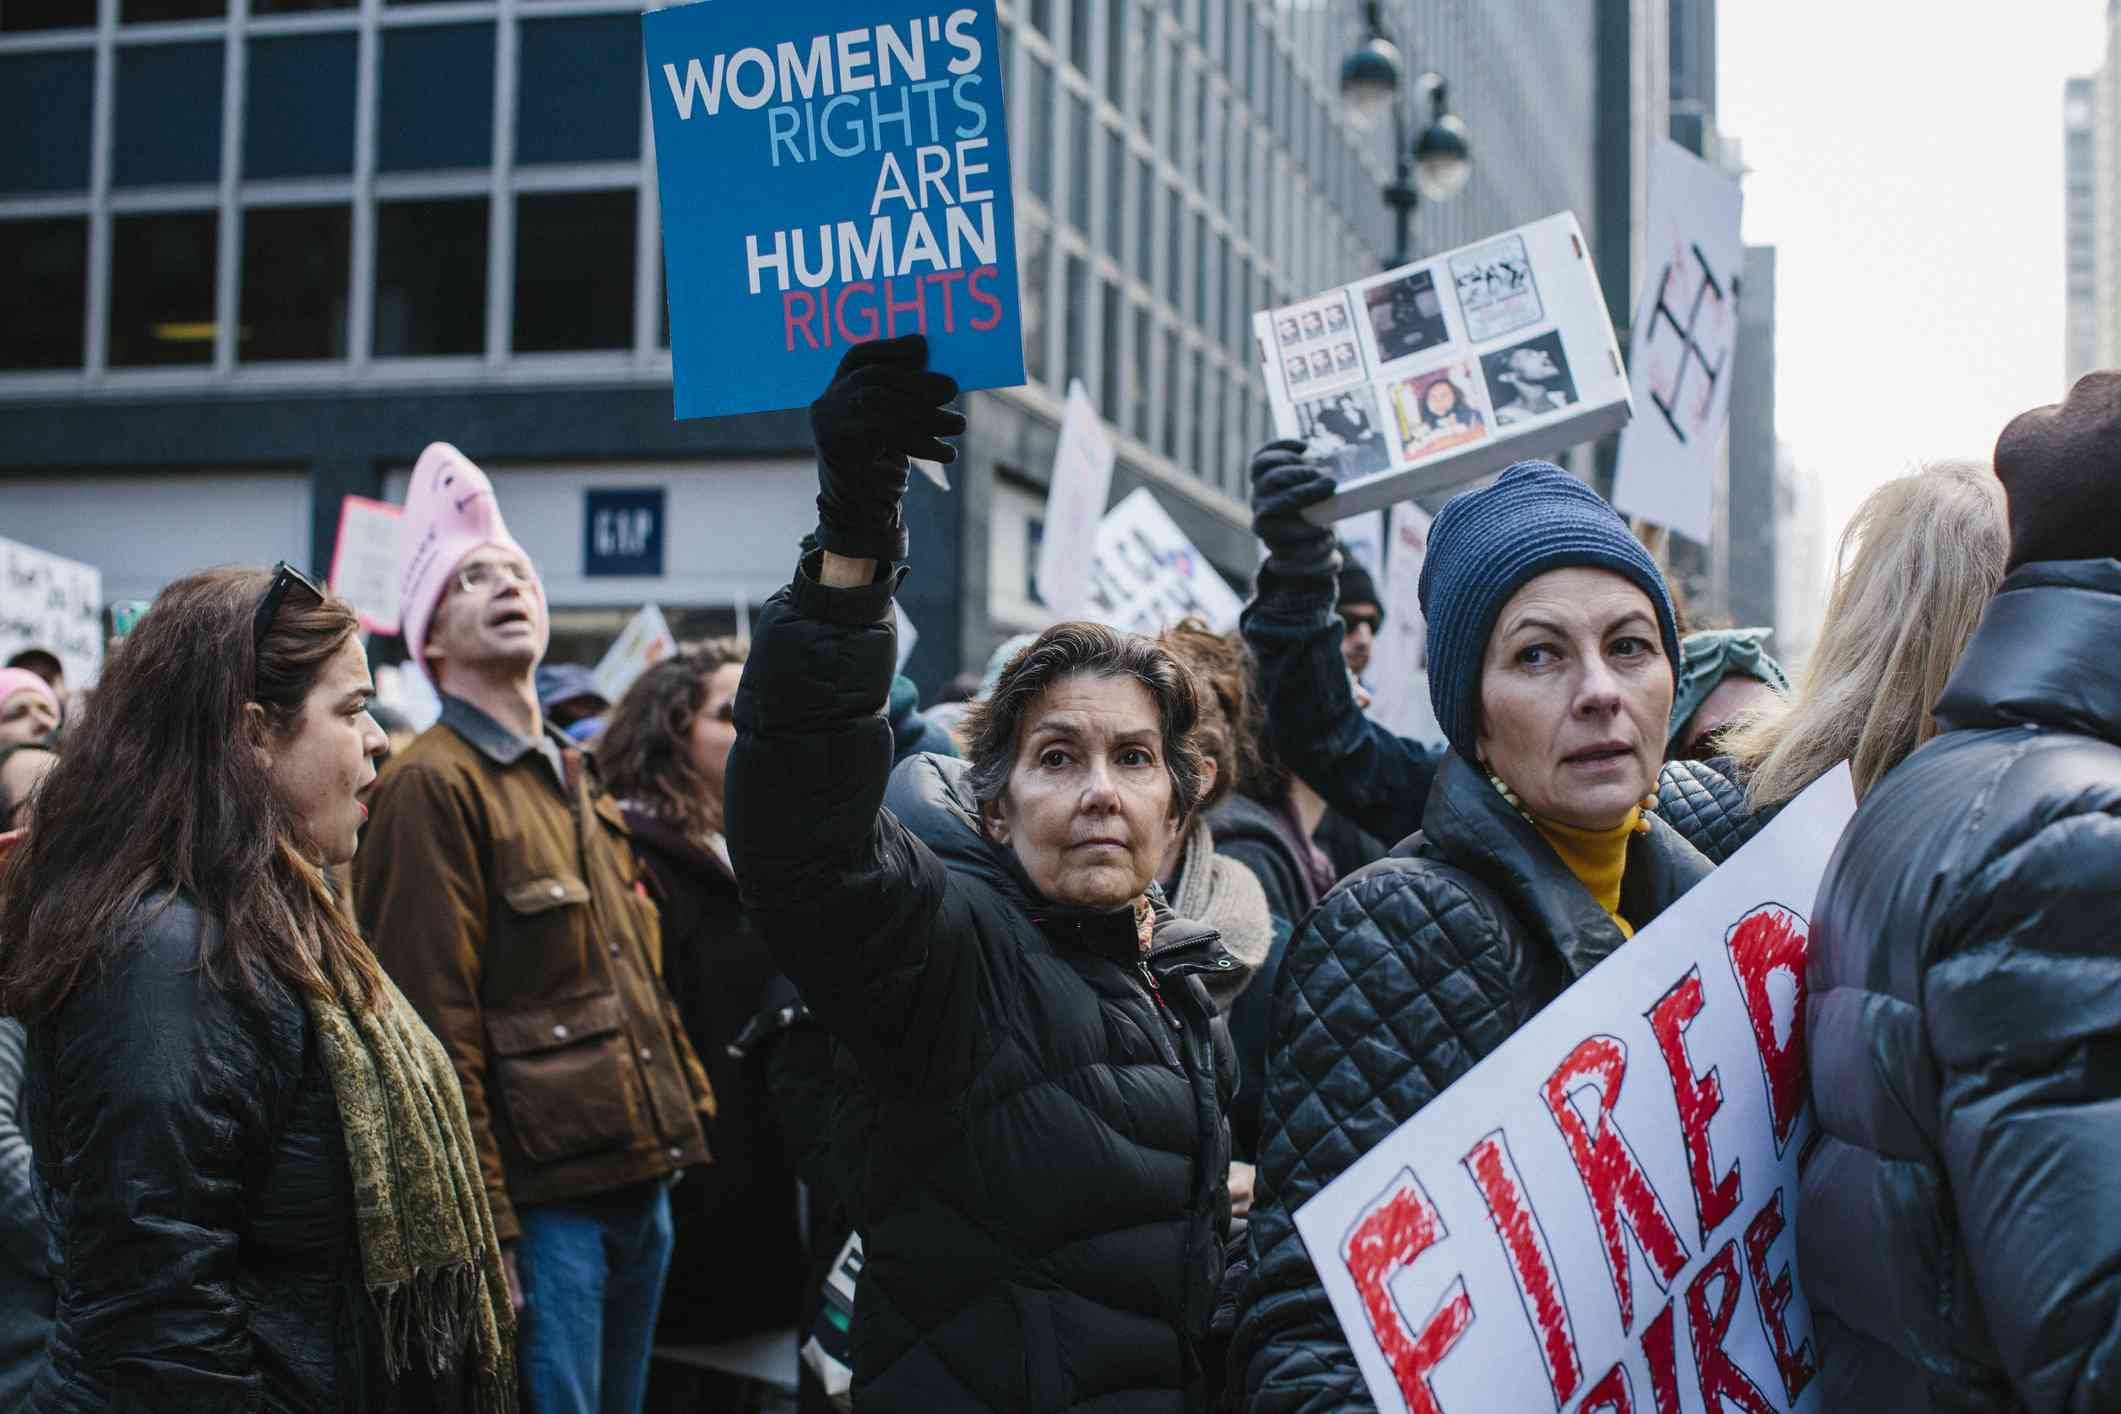 Women's rights march in New York.